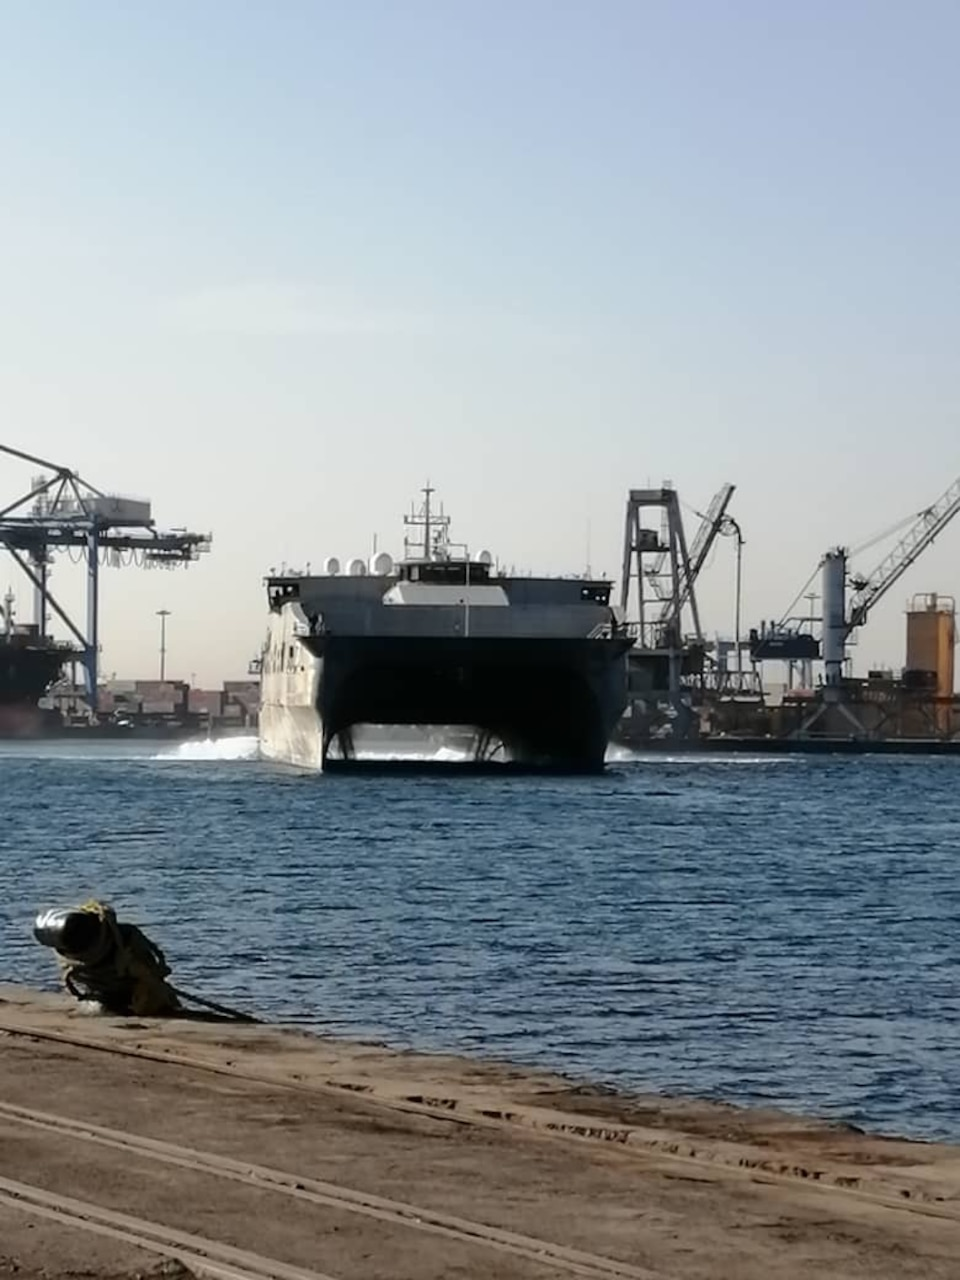 The Military Sealift Command (MSC) expeditionary fast transport ship USNS Carson City (EPF 7) arrived in Port Sudan, Sudan for a port visit, Feb. 24, 2021.